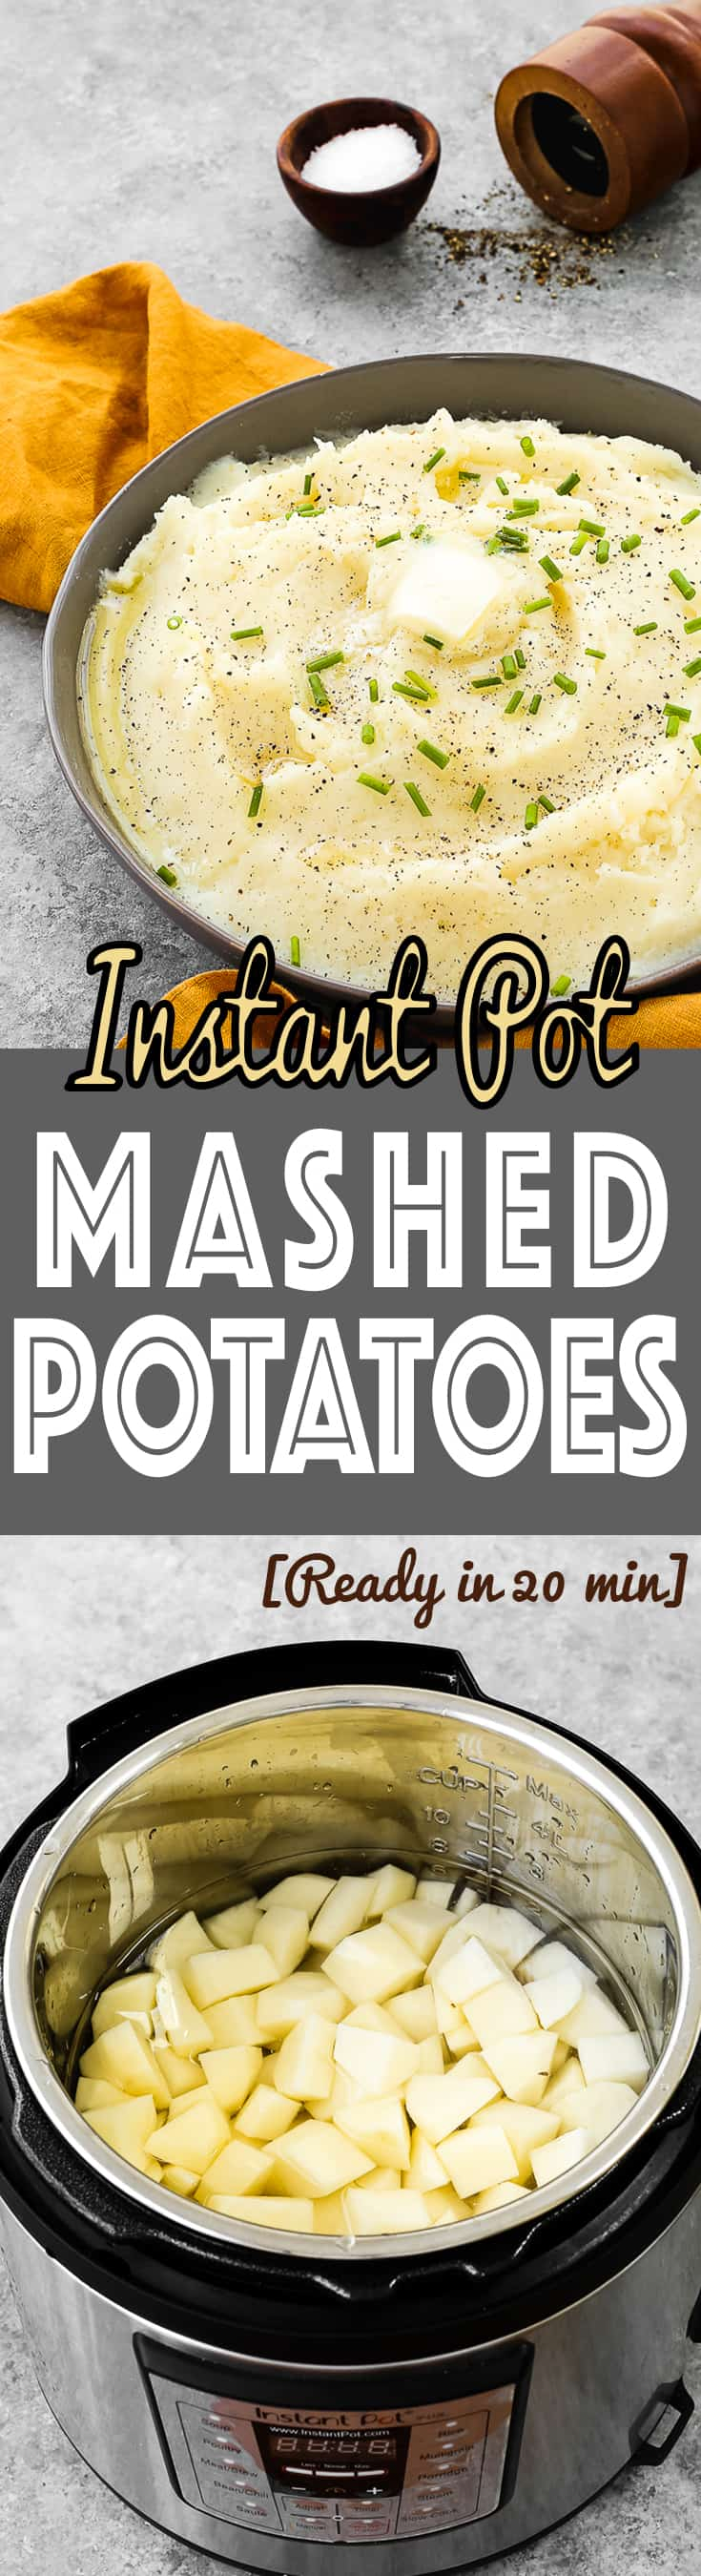 This Instant Pot Mashed Potatoes is creamy, tasty, and just delicious!  It's made with a handful of ingredients, feeds a crowd, and is ready in 20 MINUTES. It also can be prepared ahead of time. https://mommyshomecooking.com